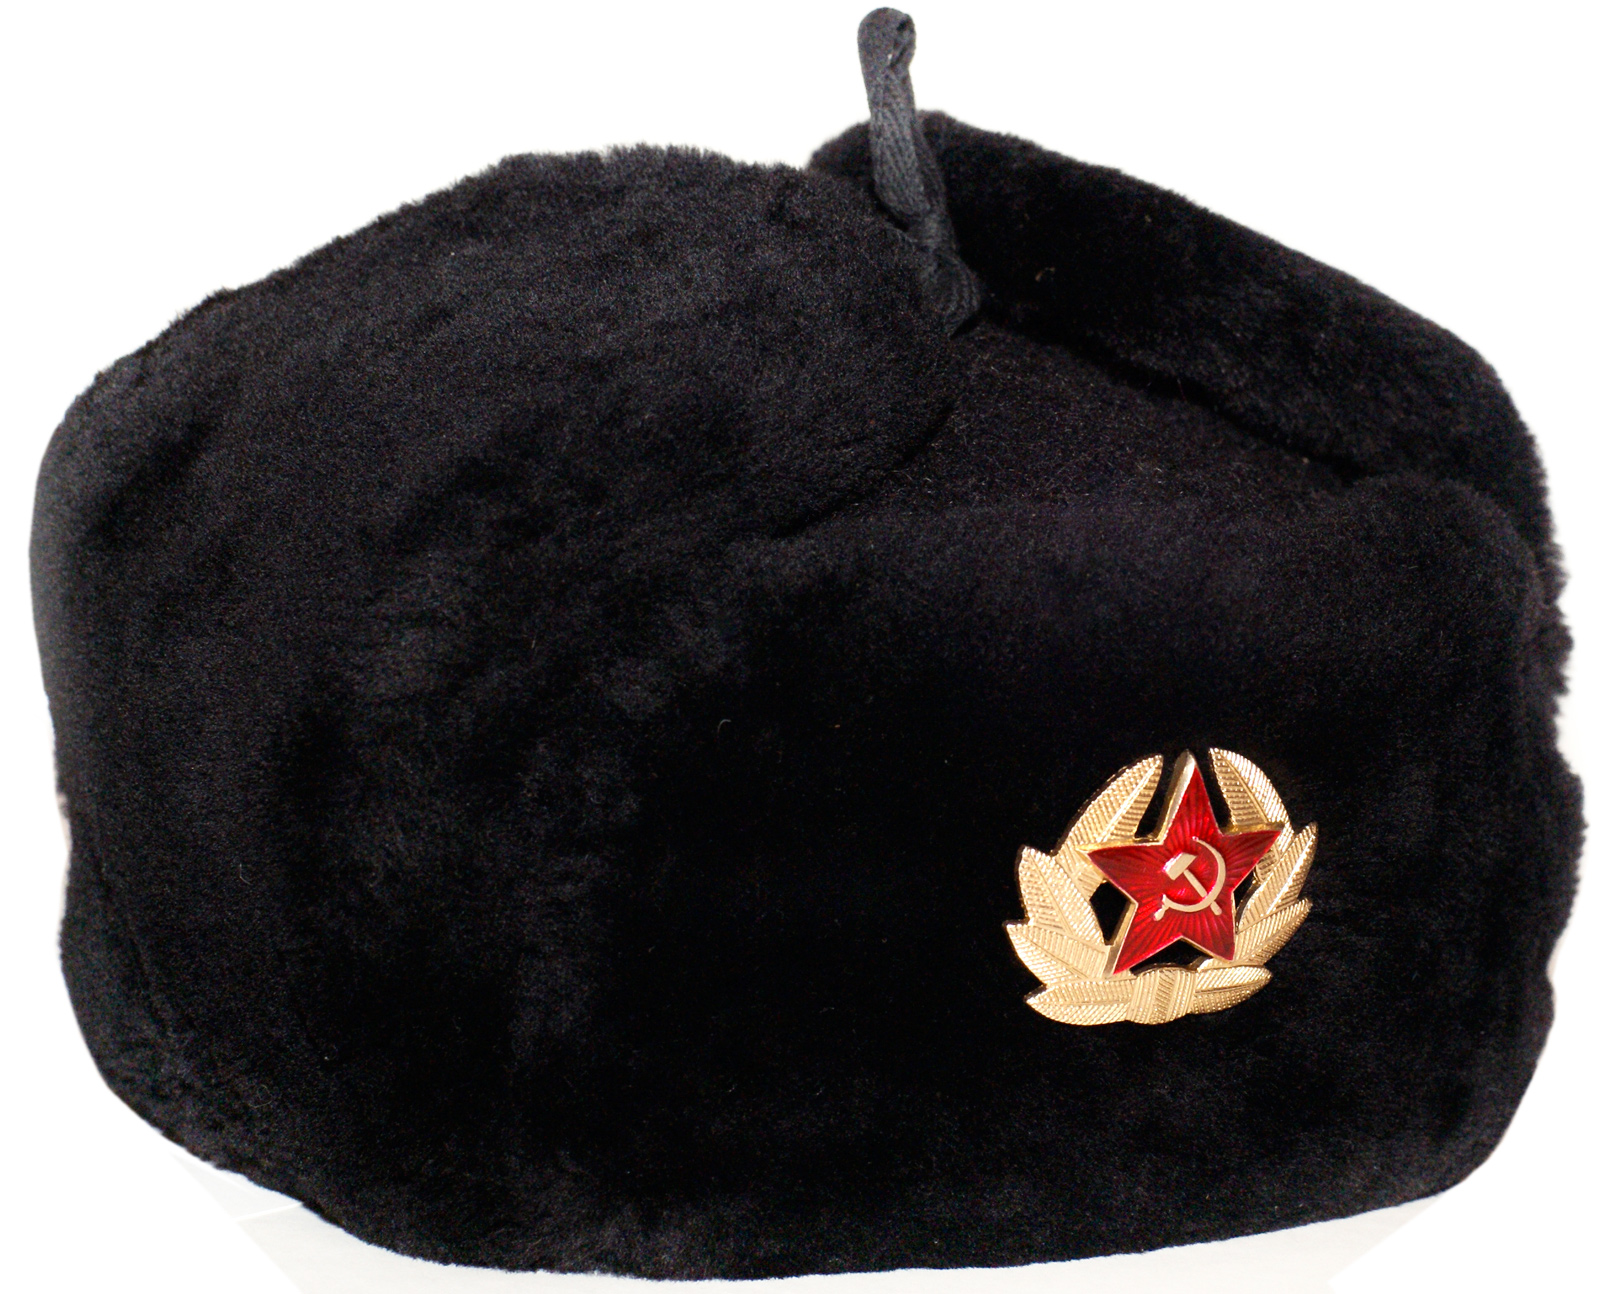 Russian Navy officer mouton ushanka hat. Black. - Walmart.com 17d63d72ebf4